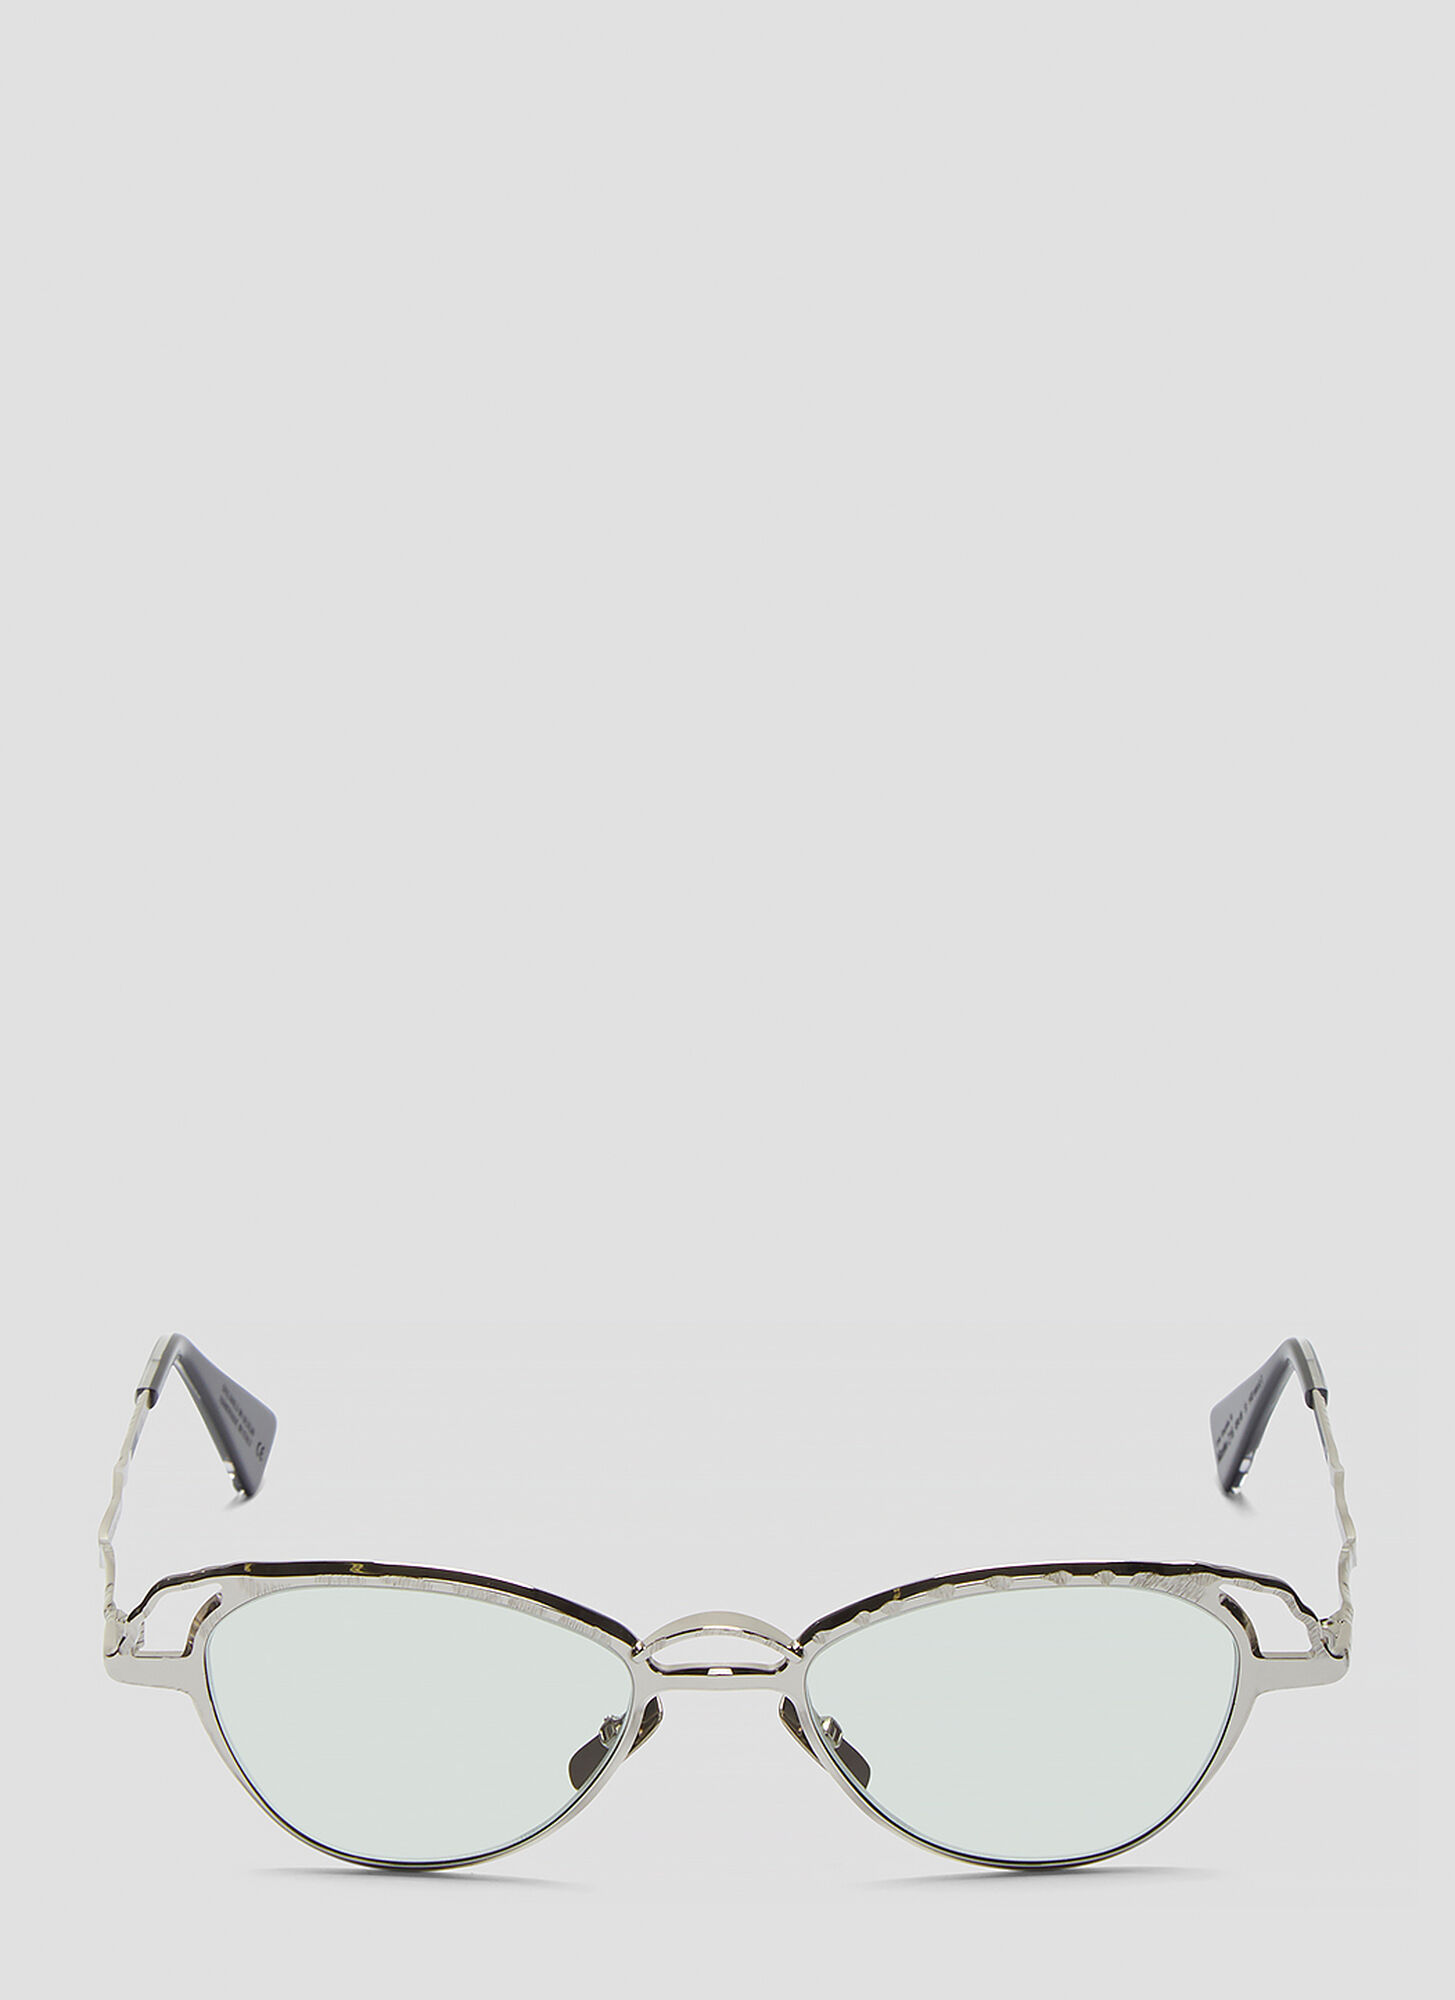 Kuboraum Mask Z16 Sunglasses in Silver